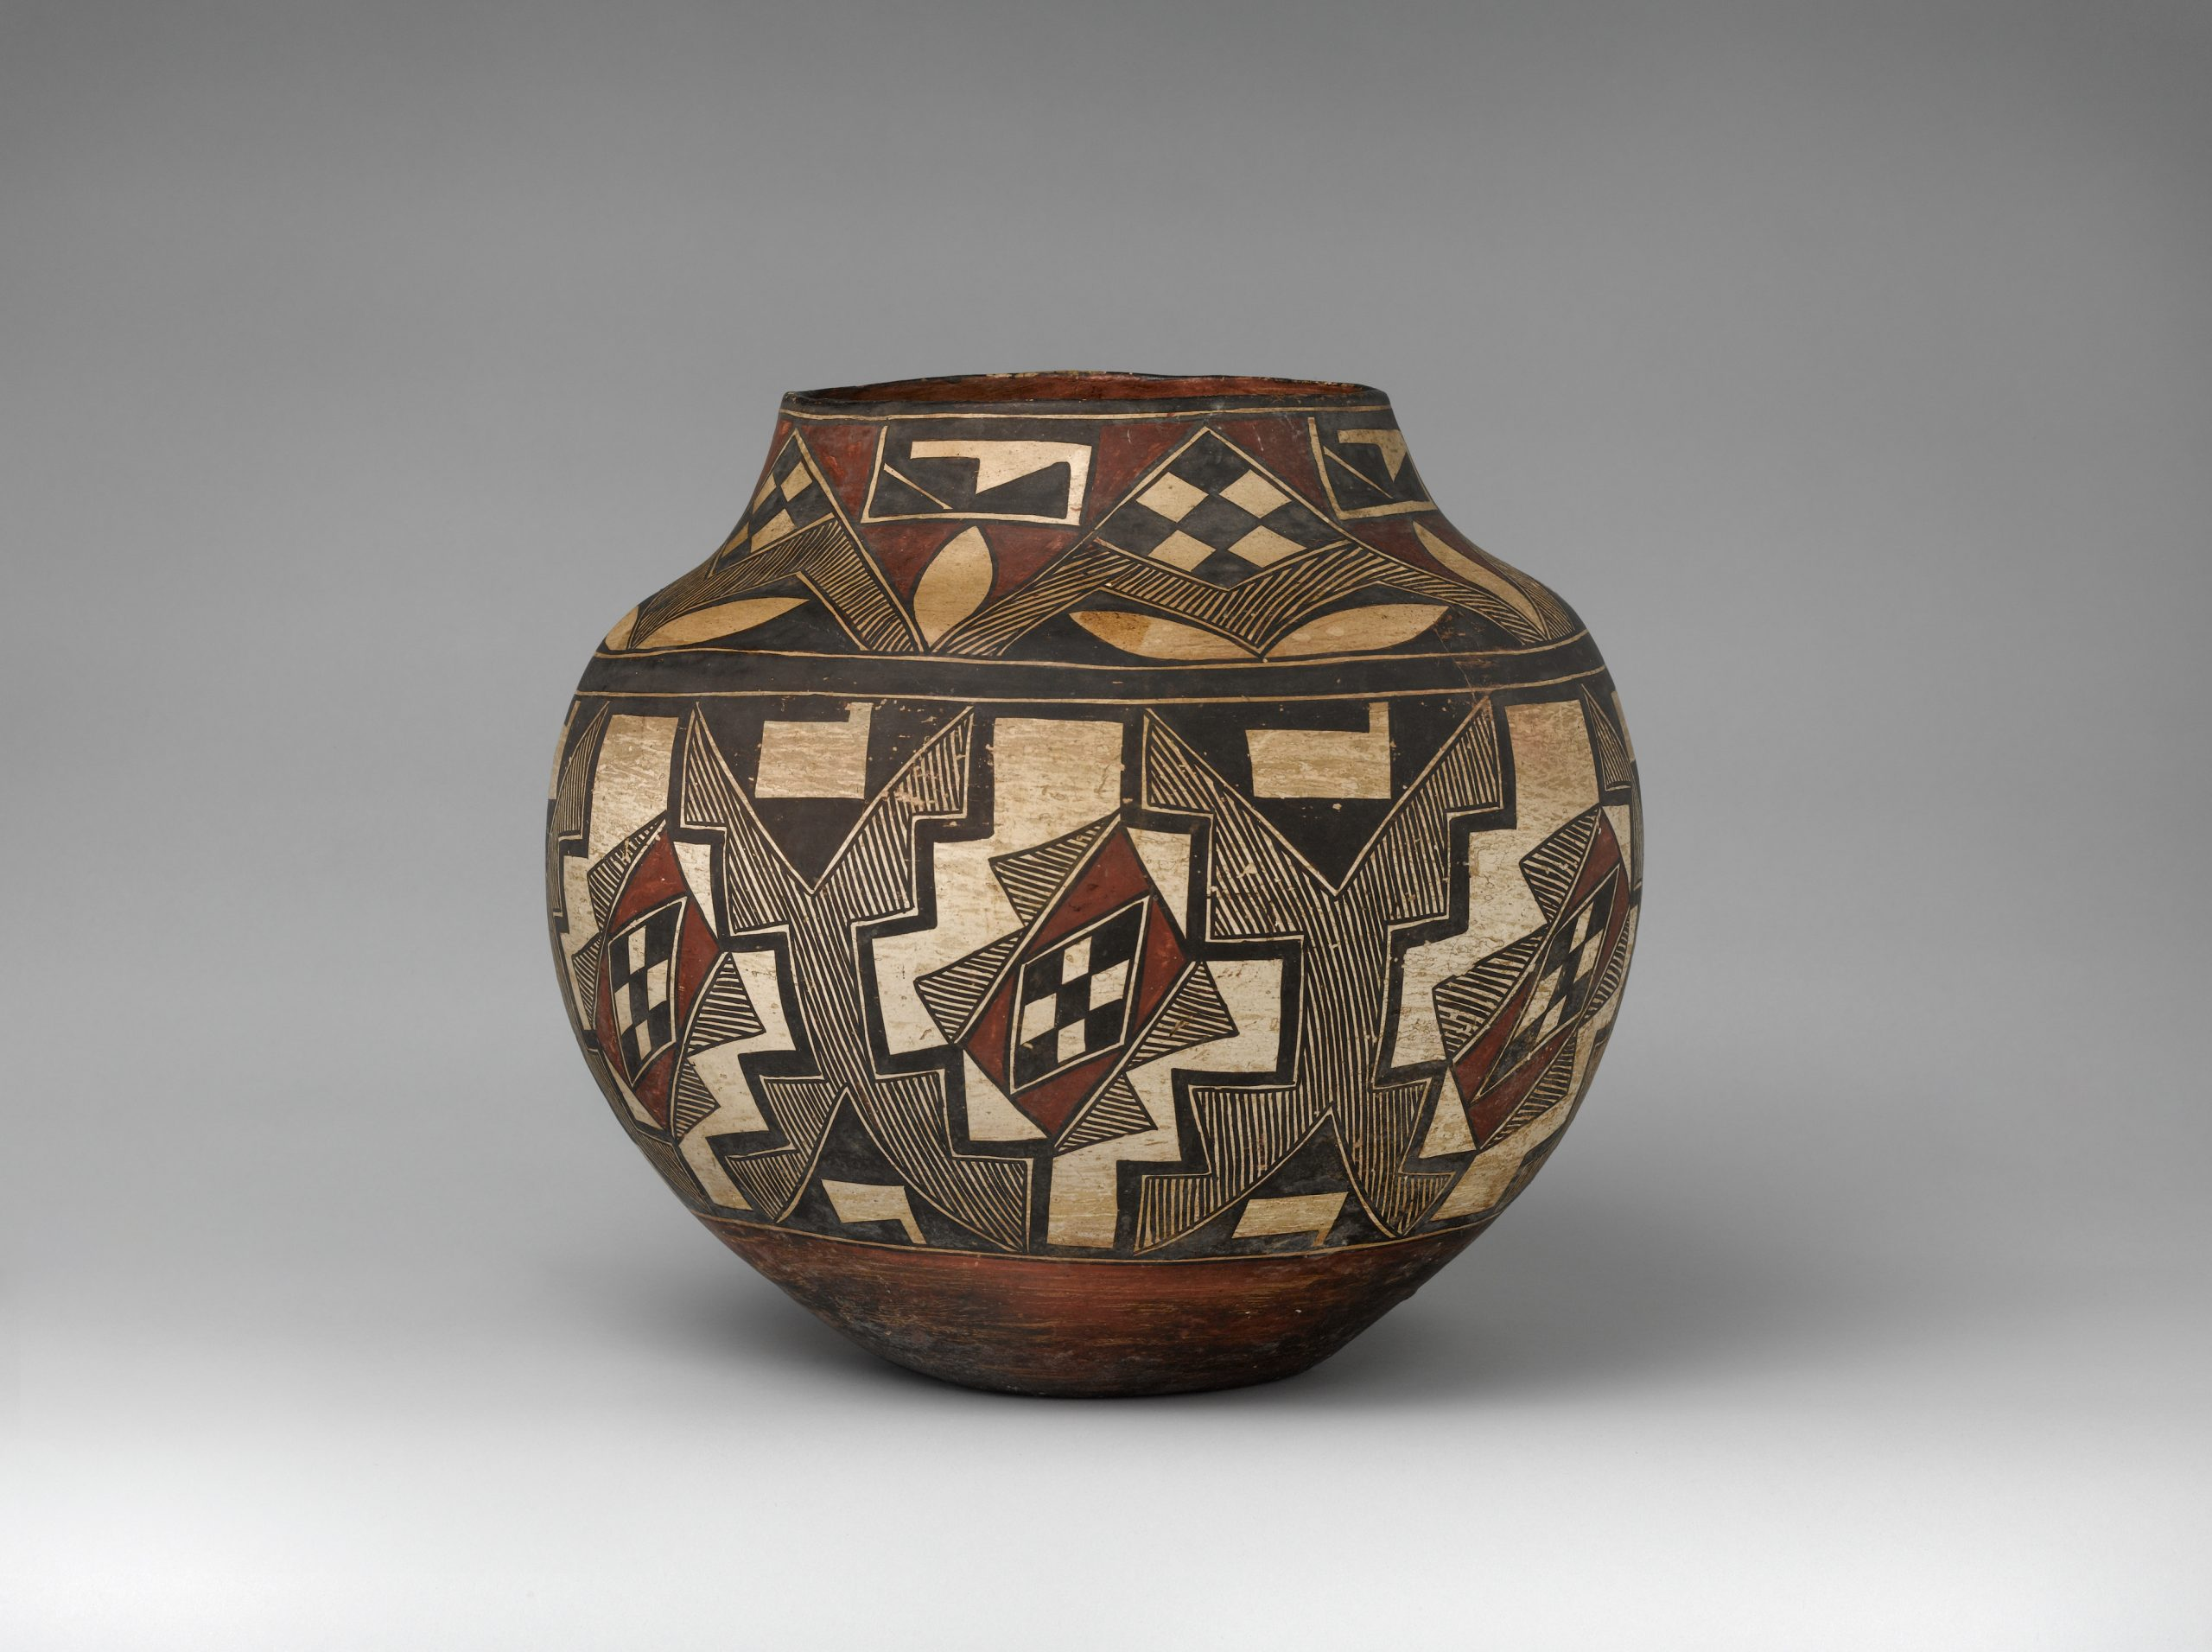 A brown Zia storage jar with a map-like design.